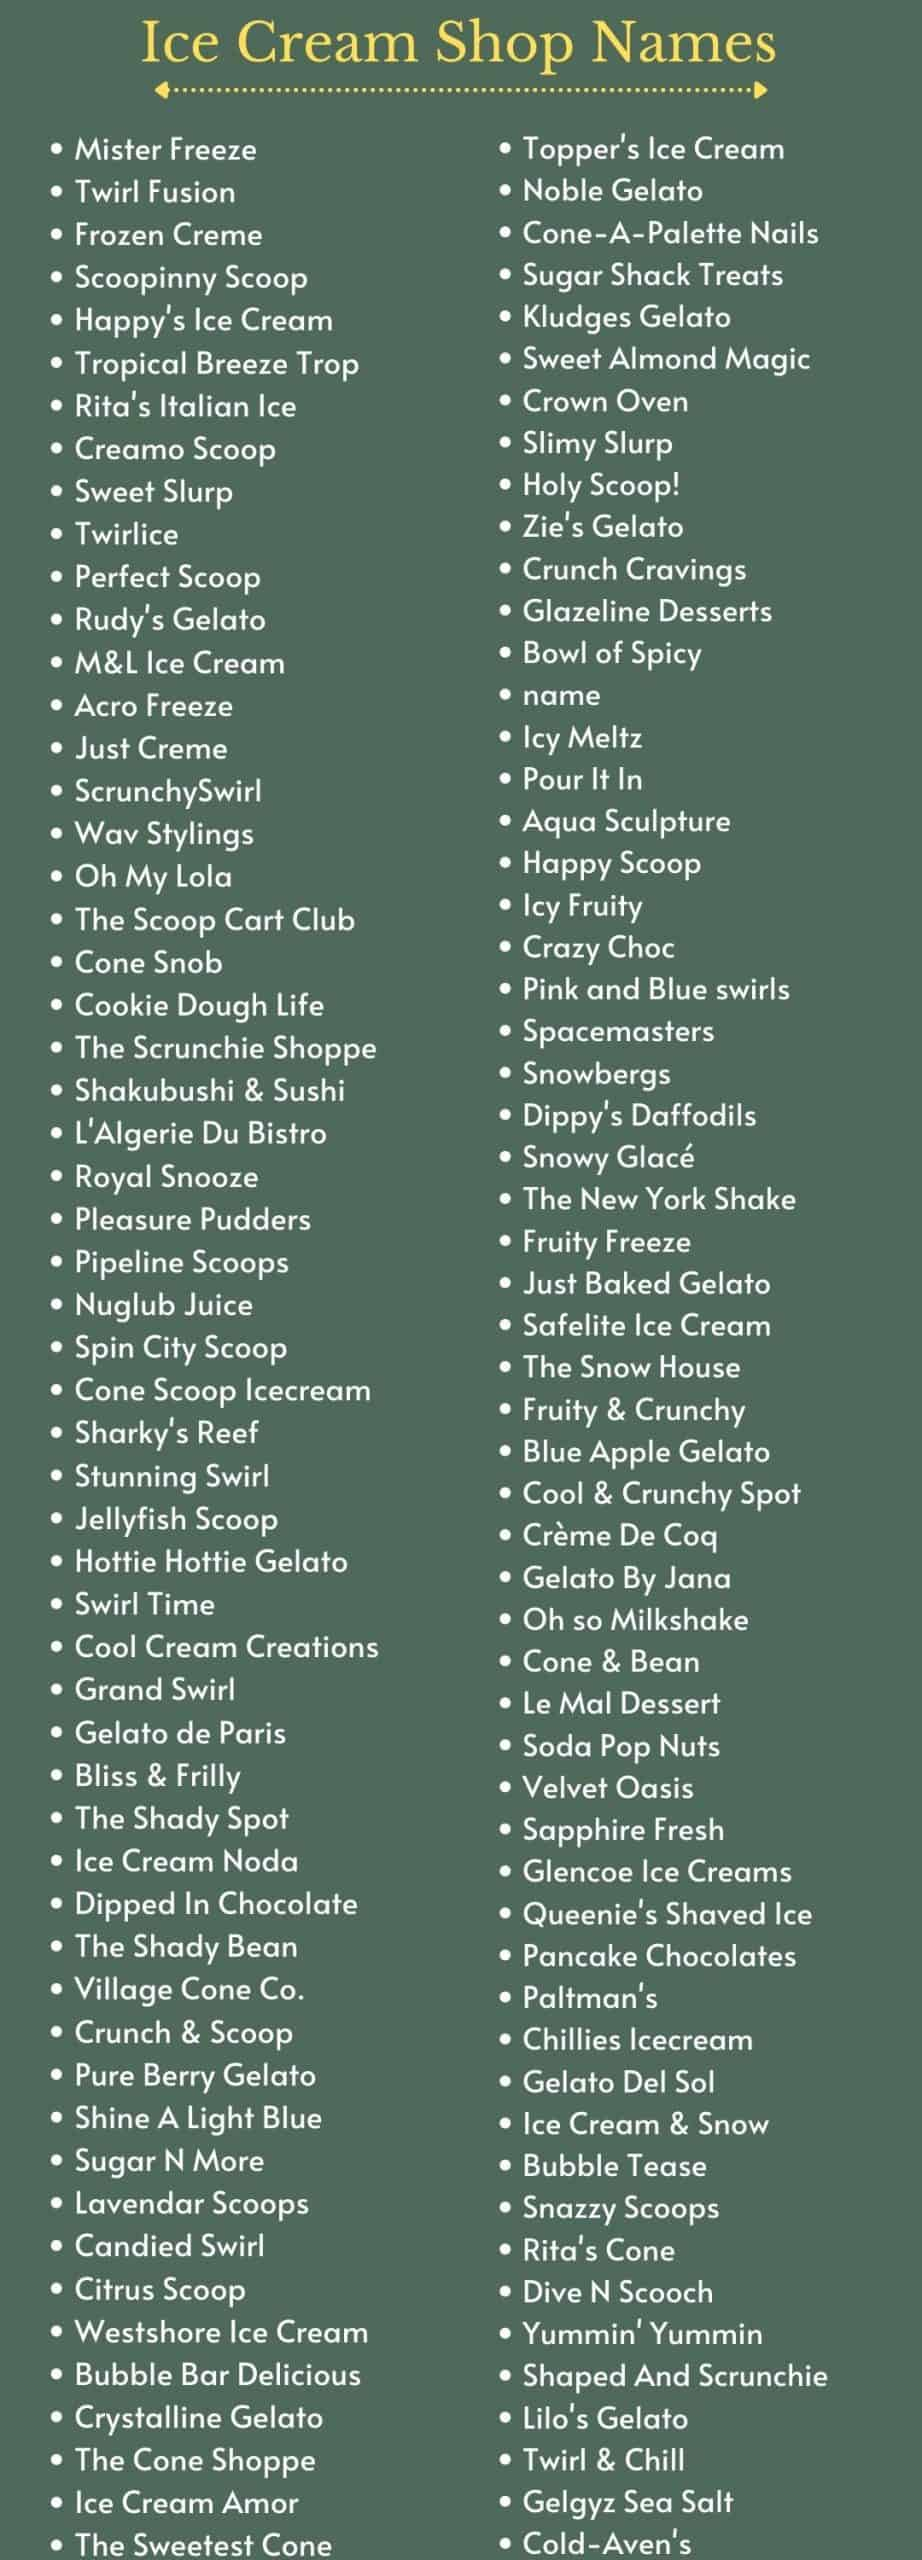 Ice Cream Shop Name Ideas and Suggestions